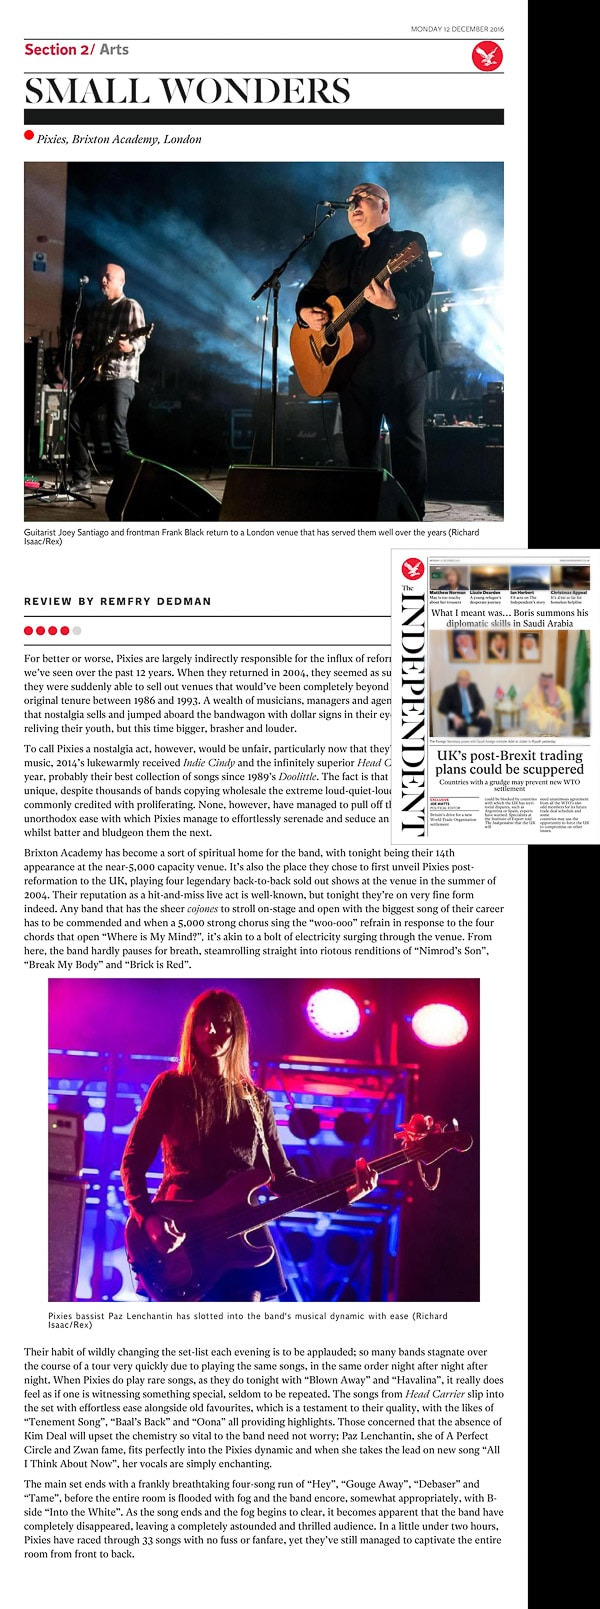 Image usage - The Independent print newspaper 12 December 2016 - Pixies live at Brixton Academy 28 November 2016